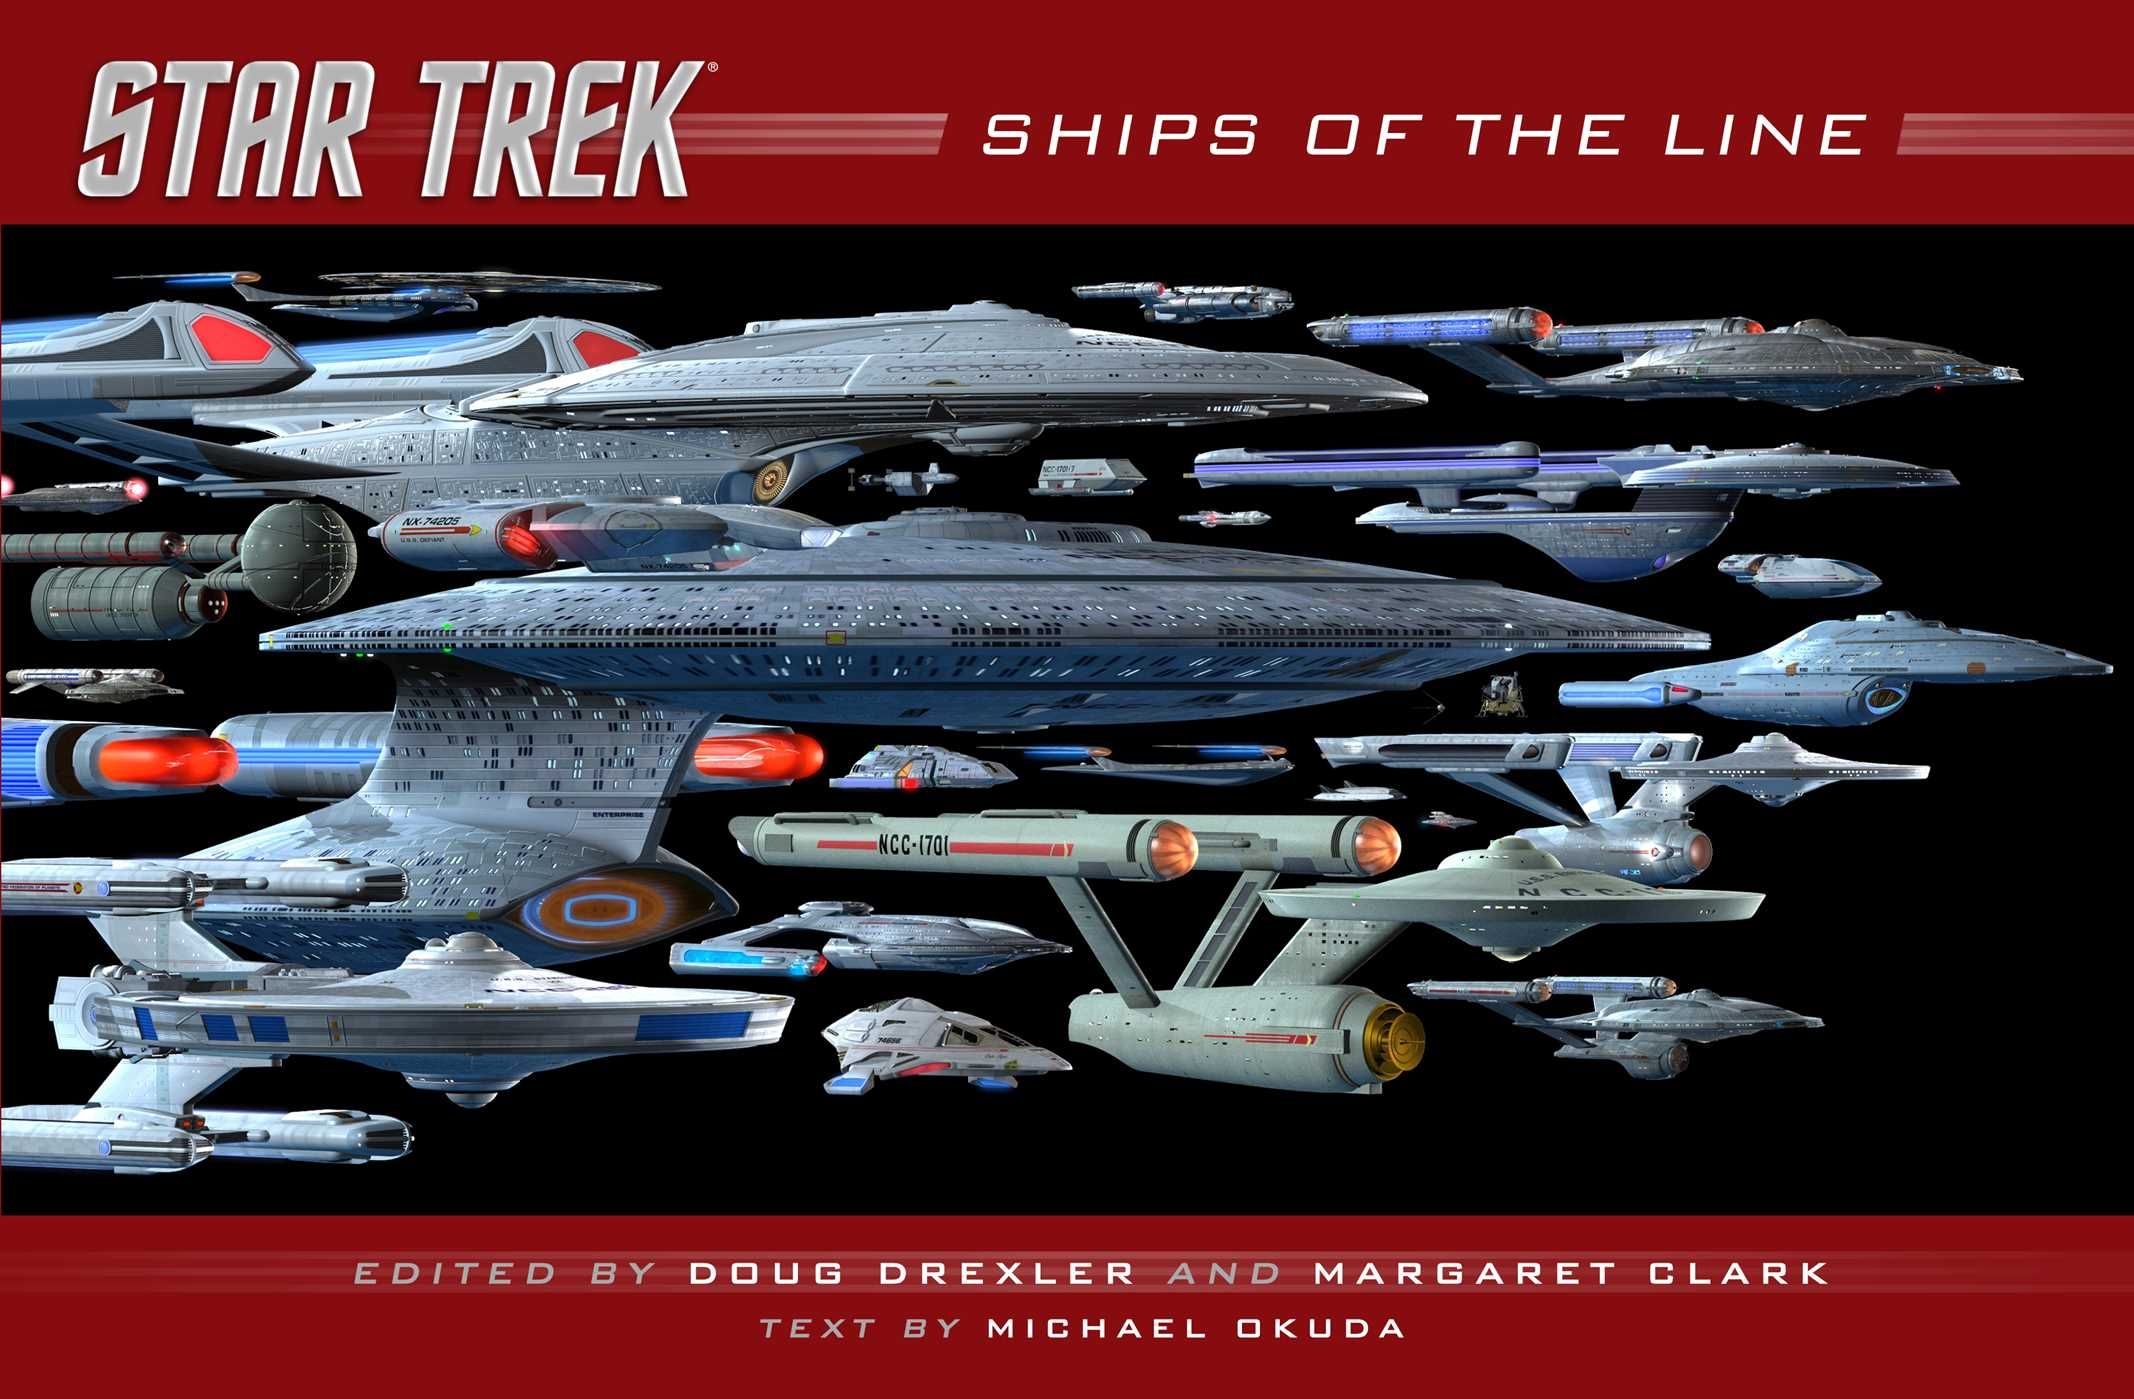 Star trek ships of the line 9781476782584 hr